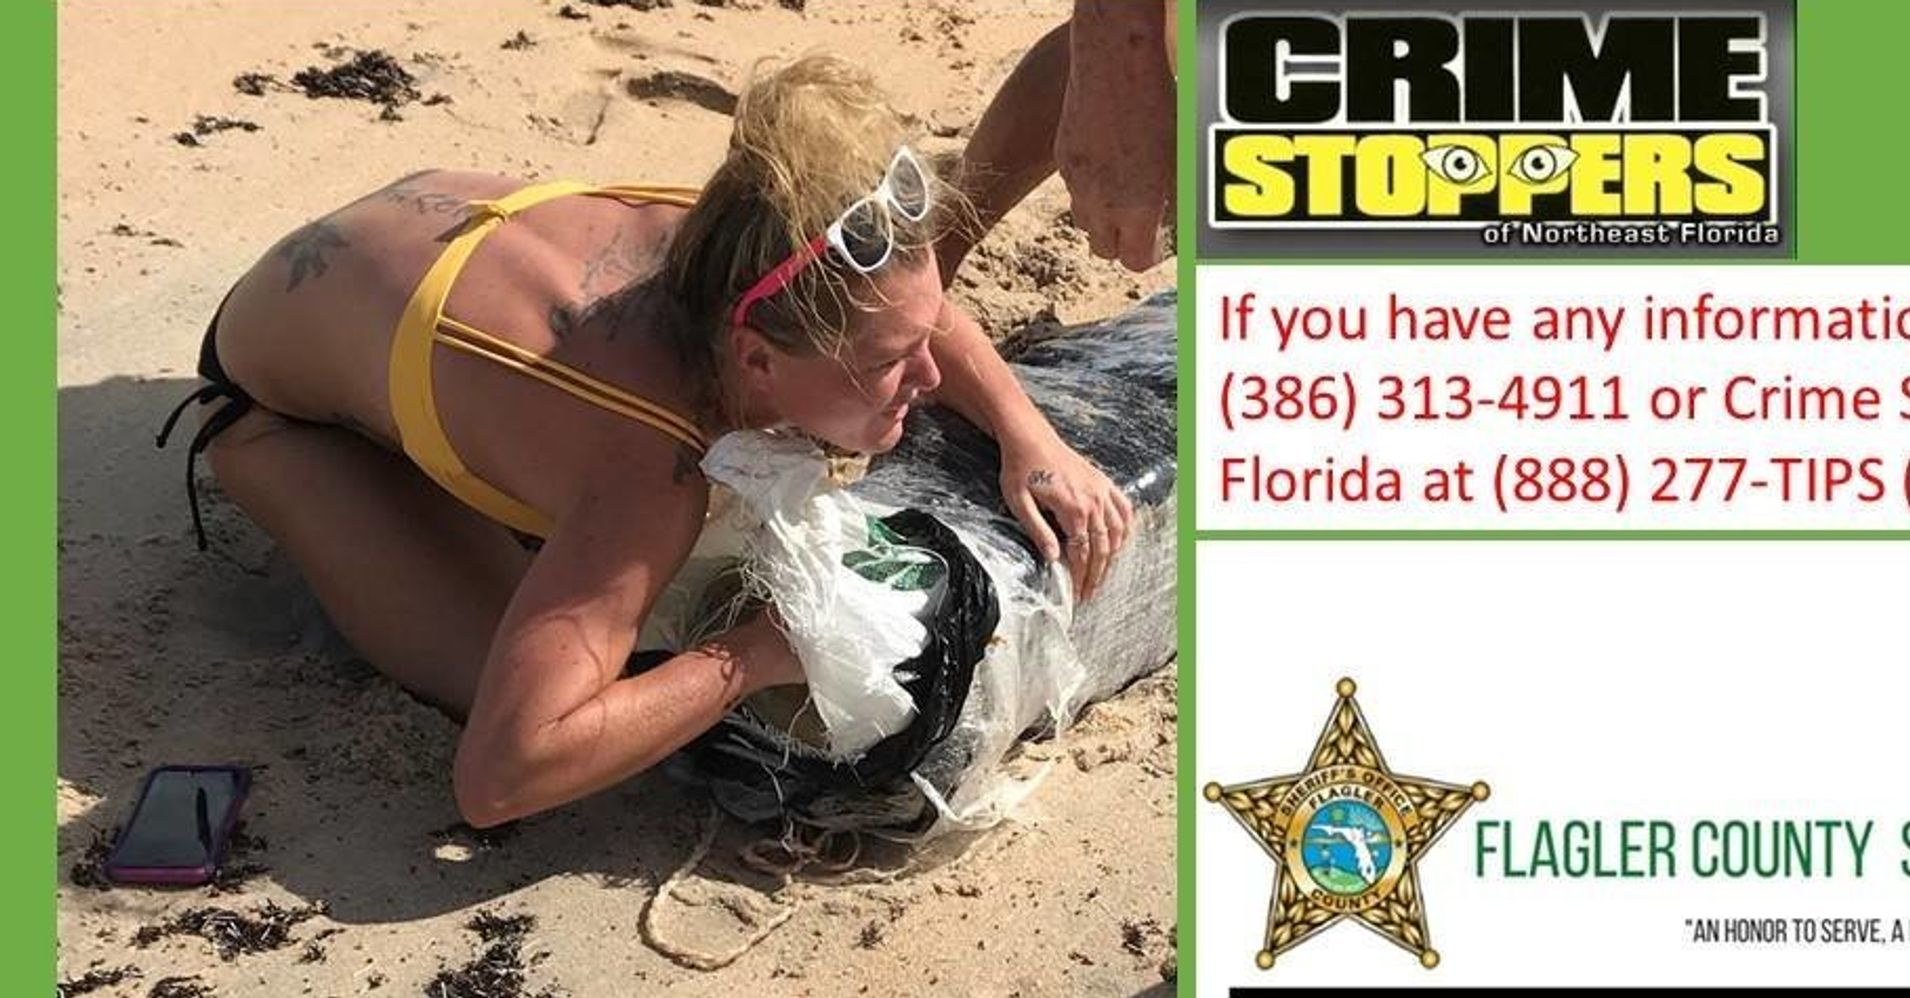 Giant Packages Of Marijuana Washed Up In Florida | HuffPost